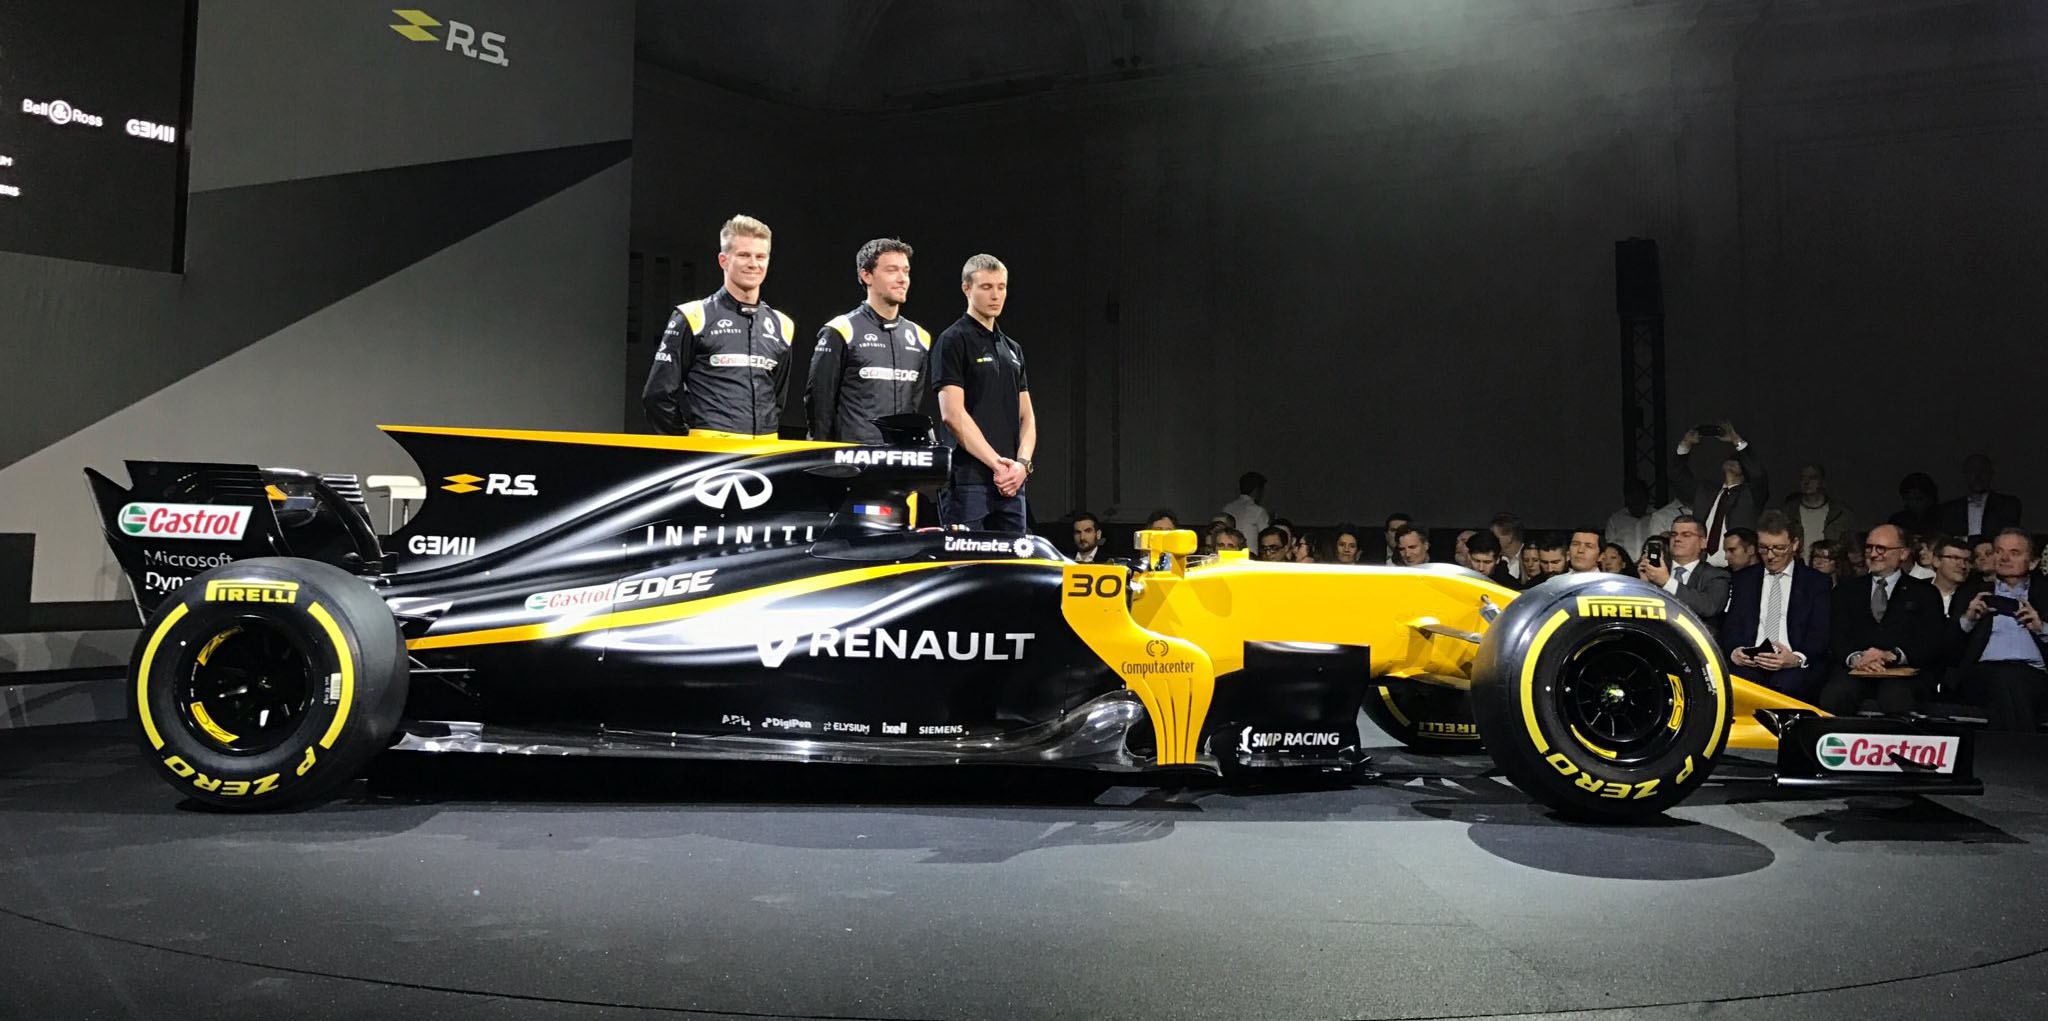 Renault's 2017 prospects